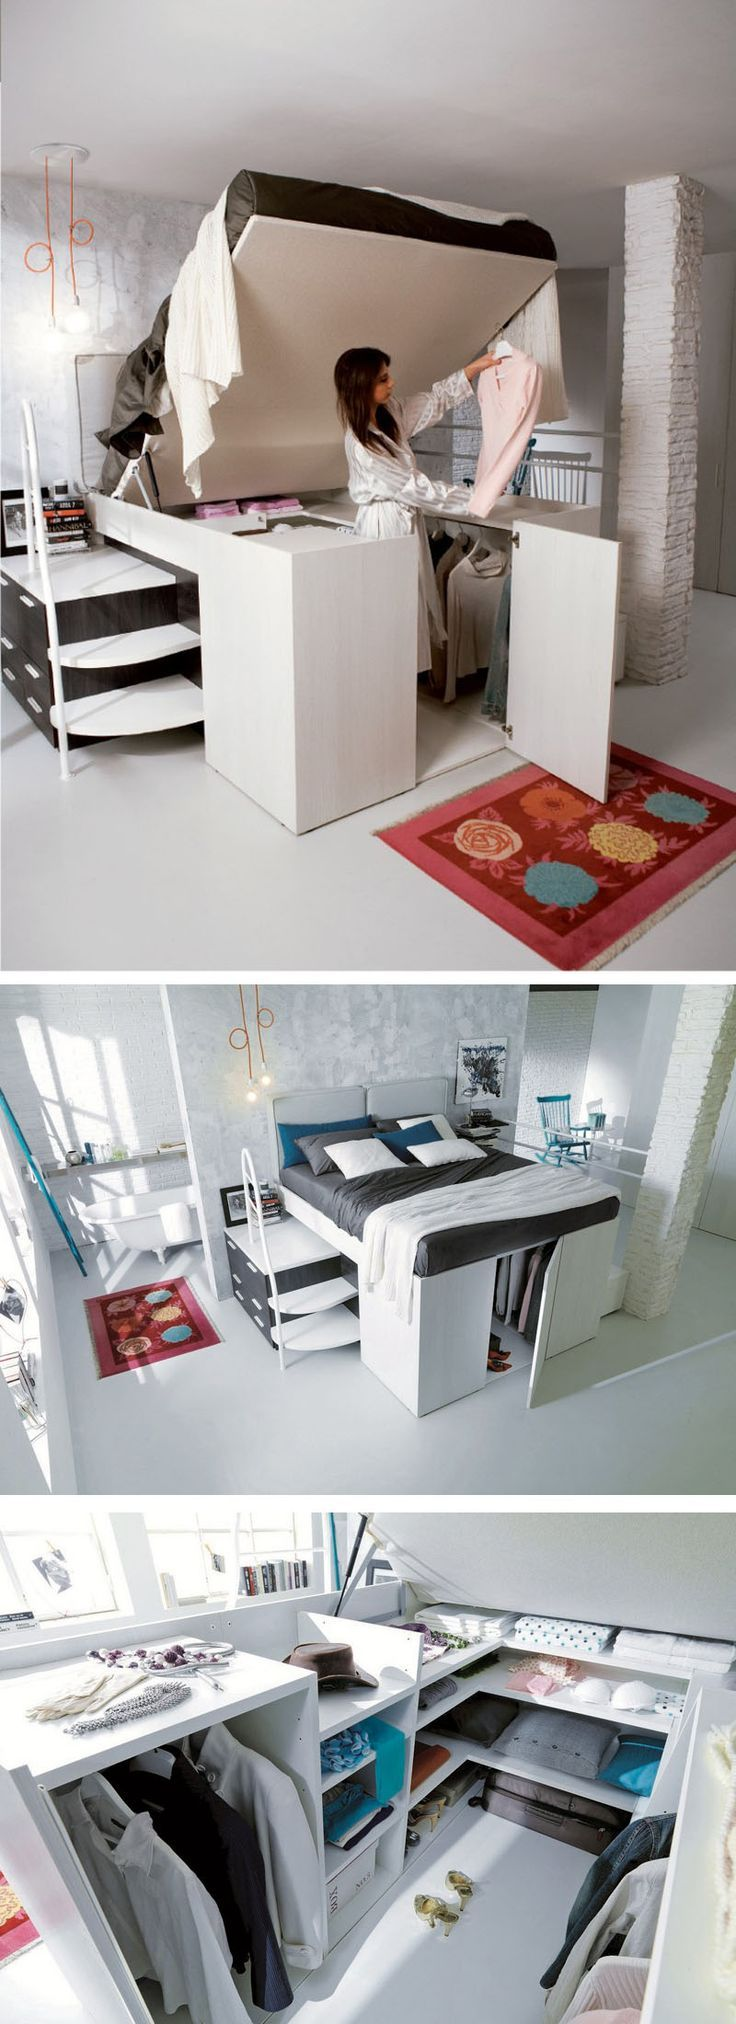 unusual ideas design hidden beds. cool A Full Closet Is Hidden Under This Bed by http www